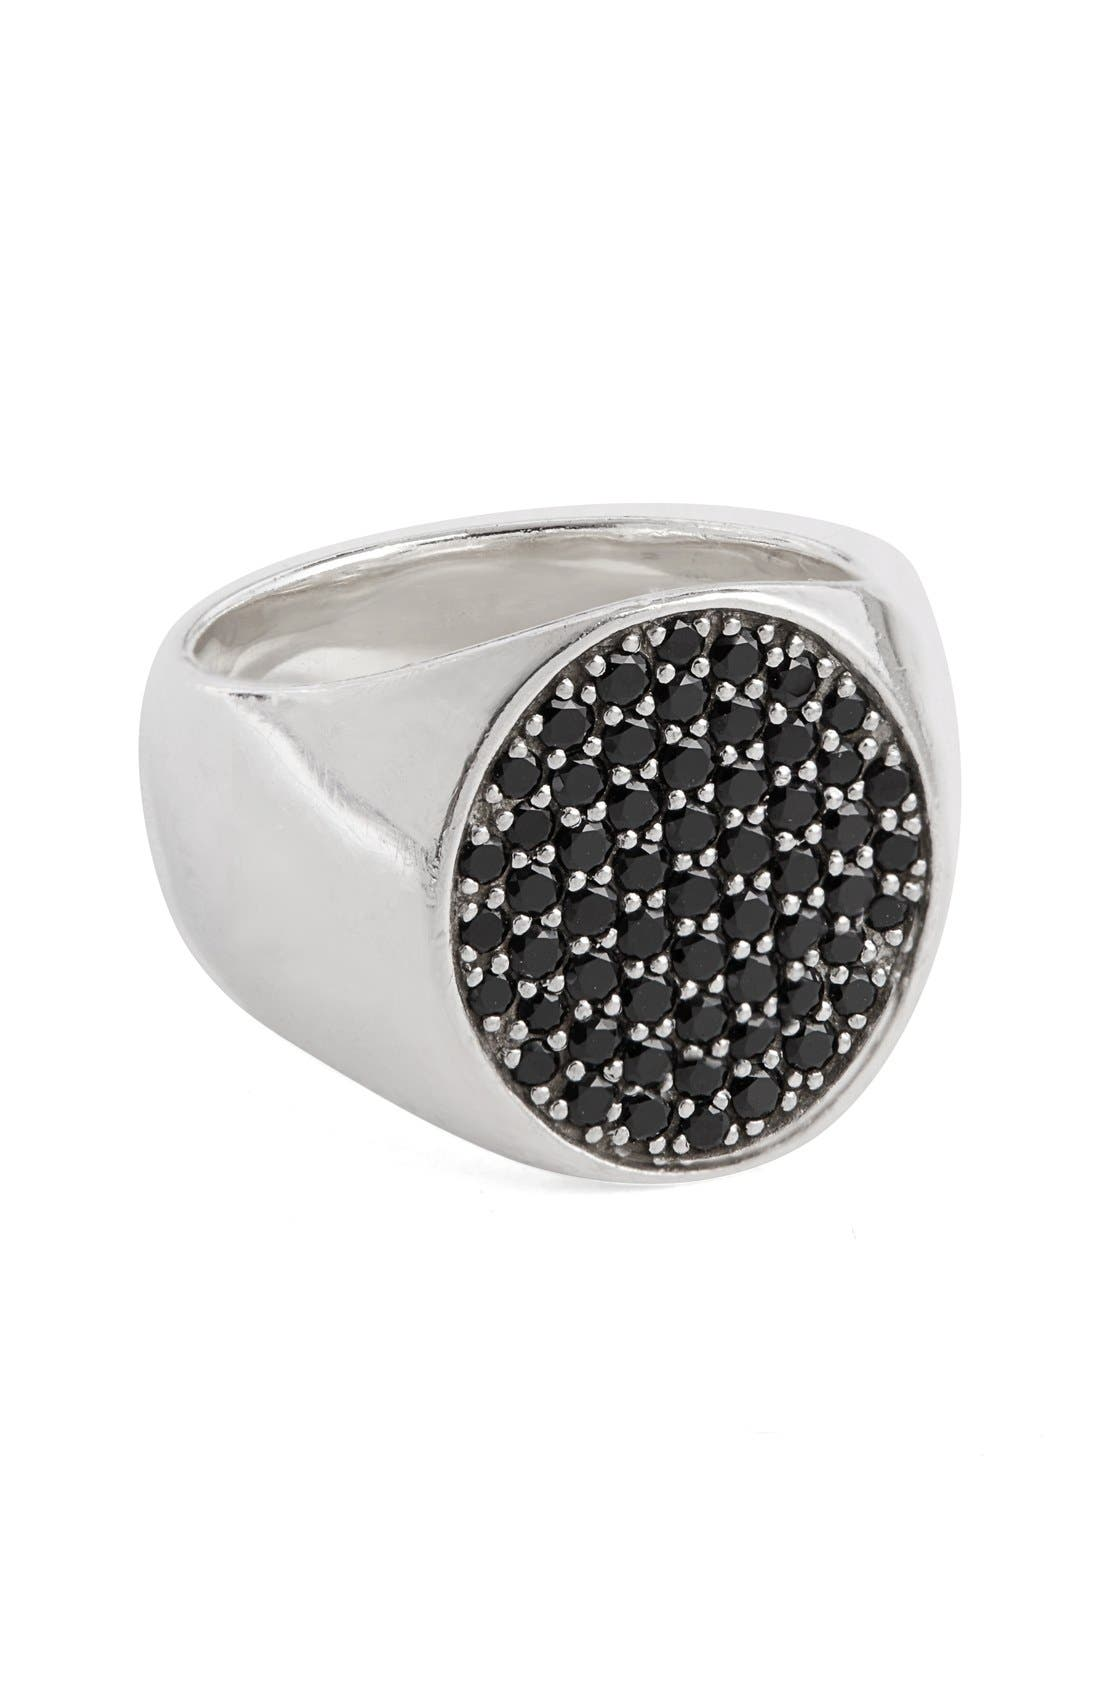 Black Spinel Oval Pinkie Ring,                         Main,                         color, Silver Black Spinel